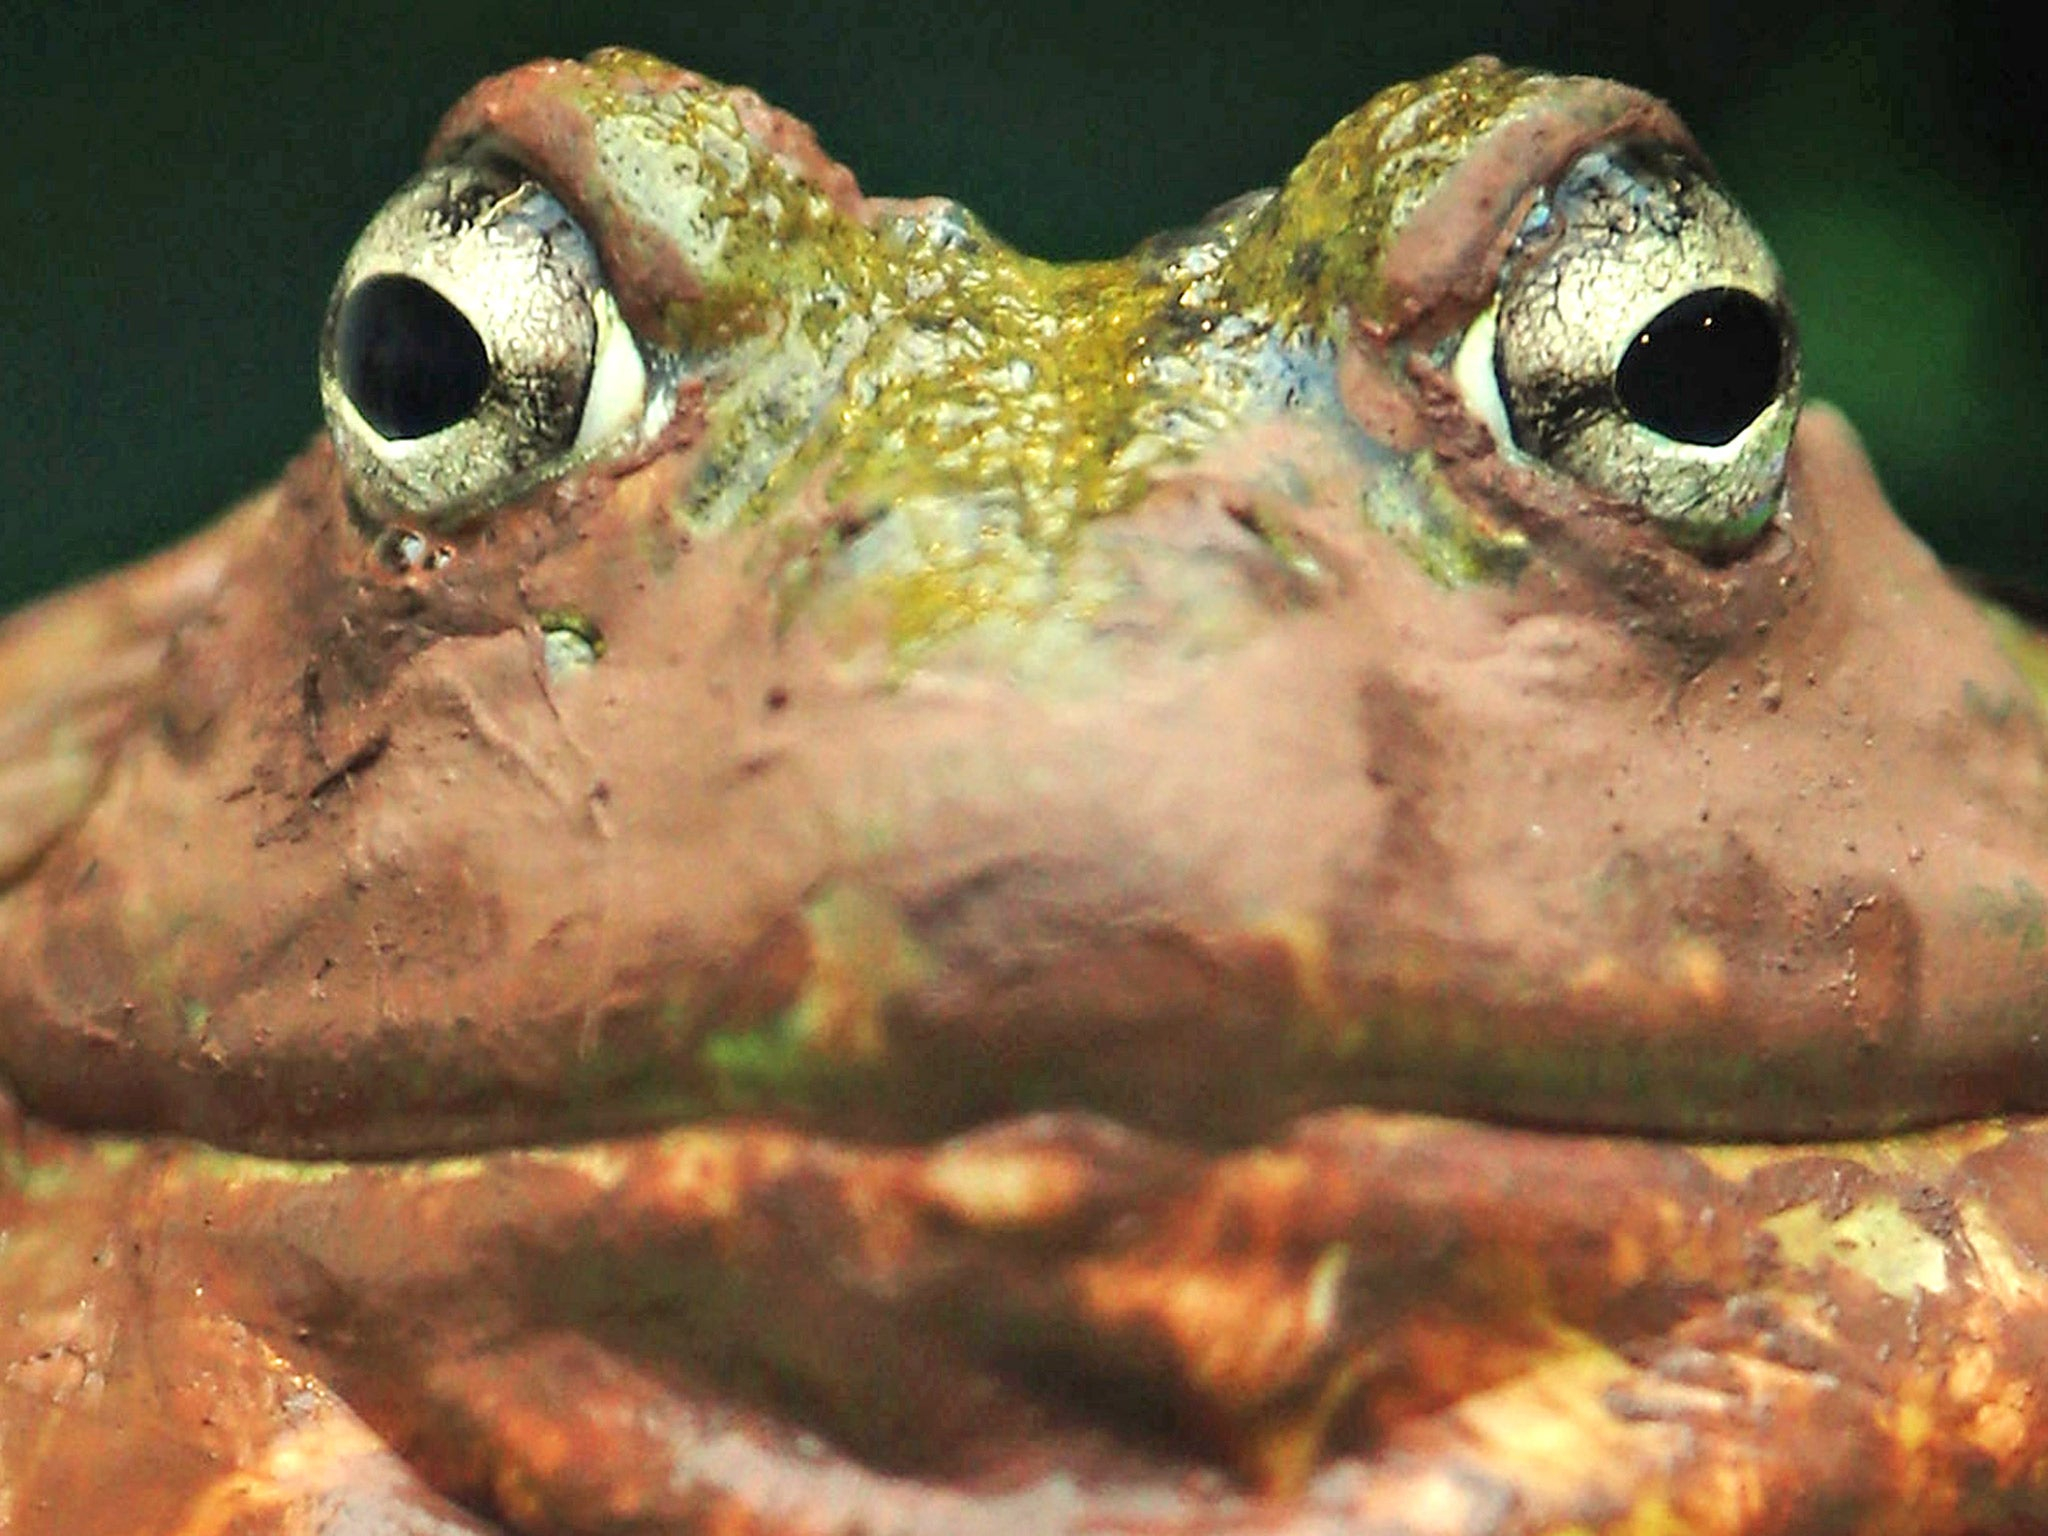 us man with frog phobia wins 1 6m in damages after run off water